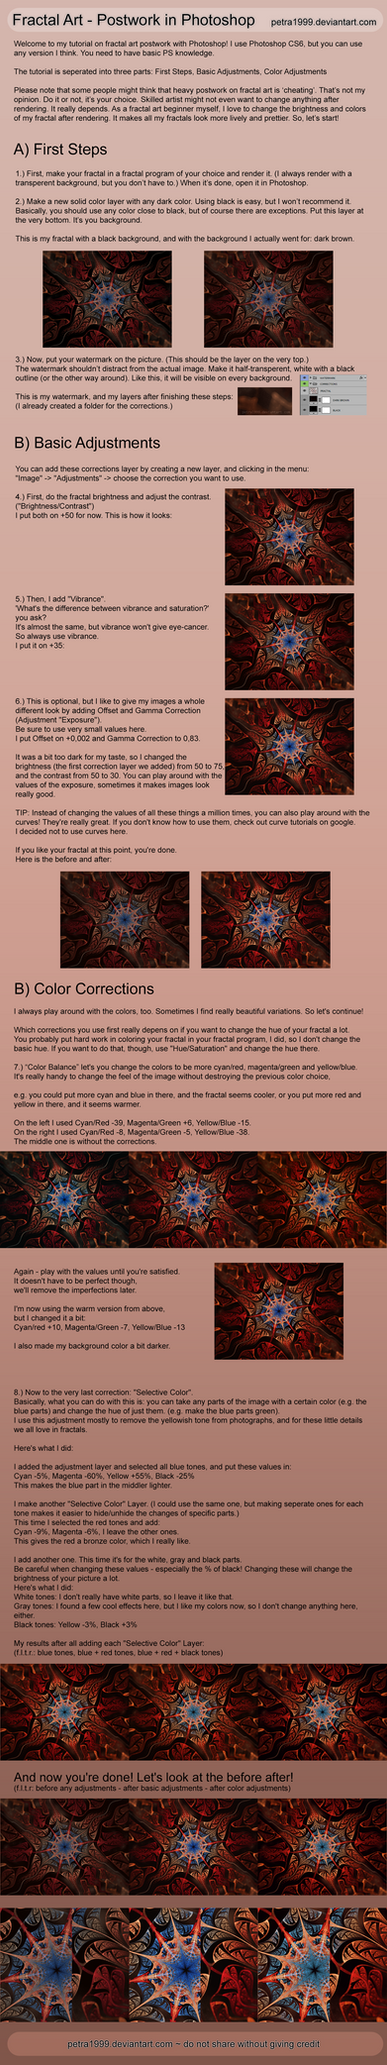 Fractal Postwork in Photoshop - Tutorial by Petra1999